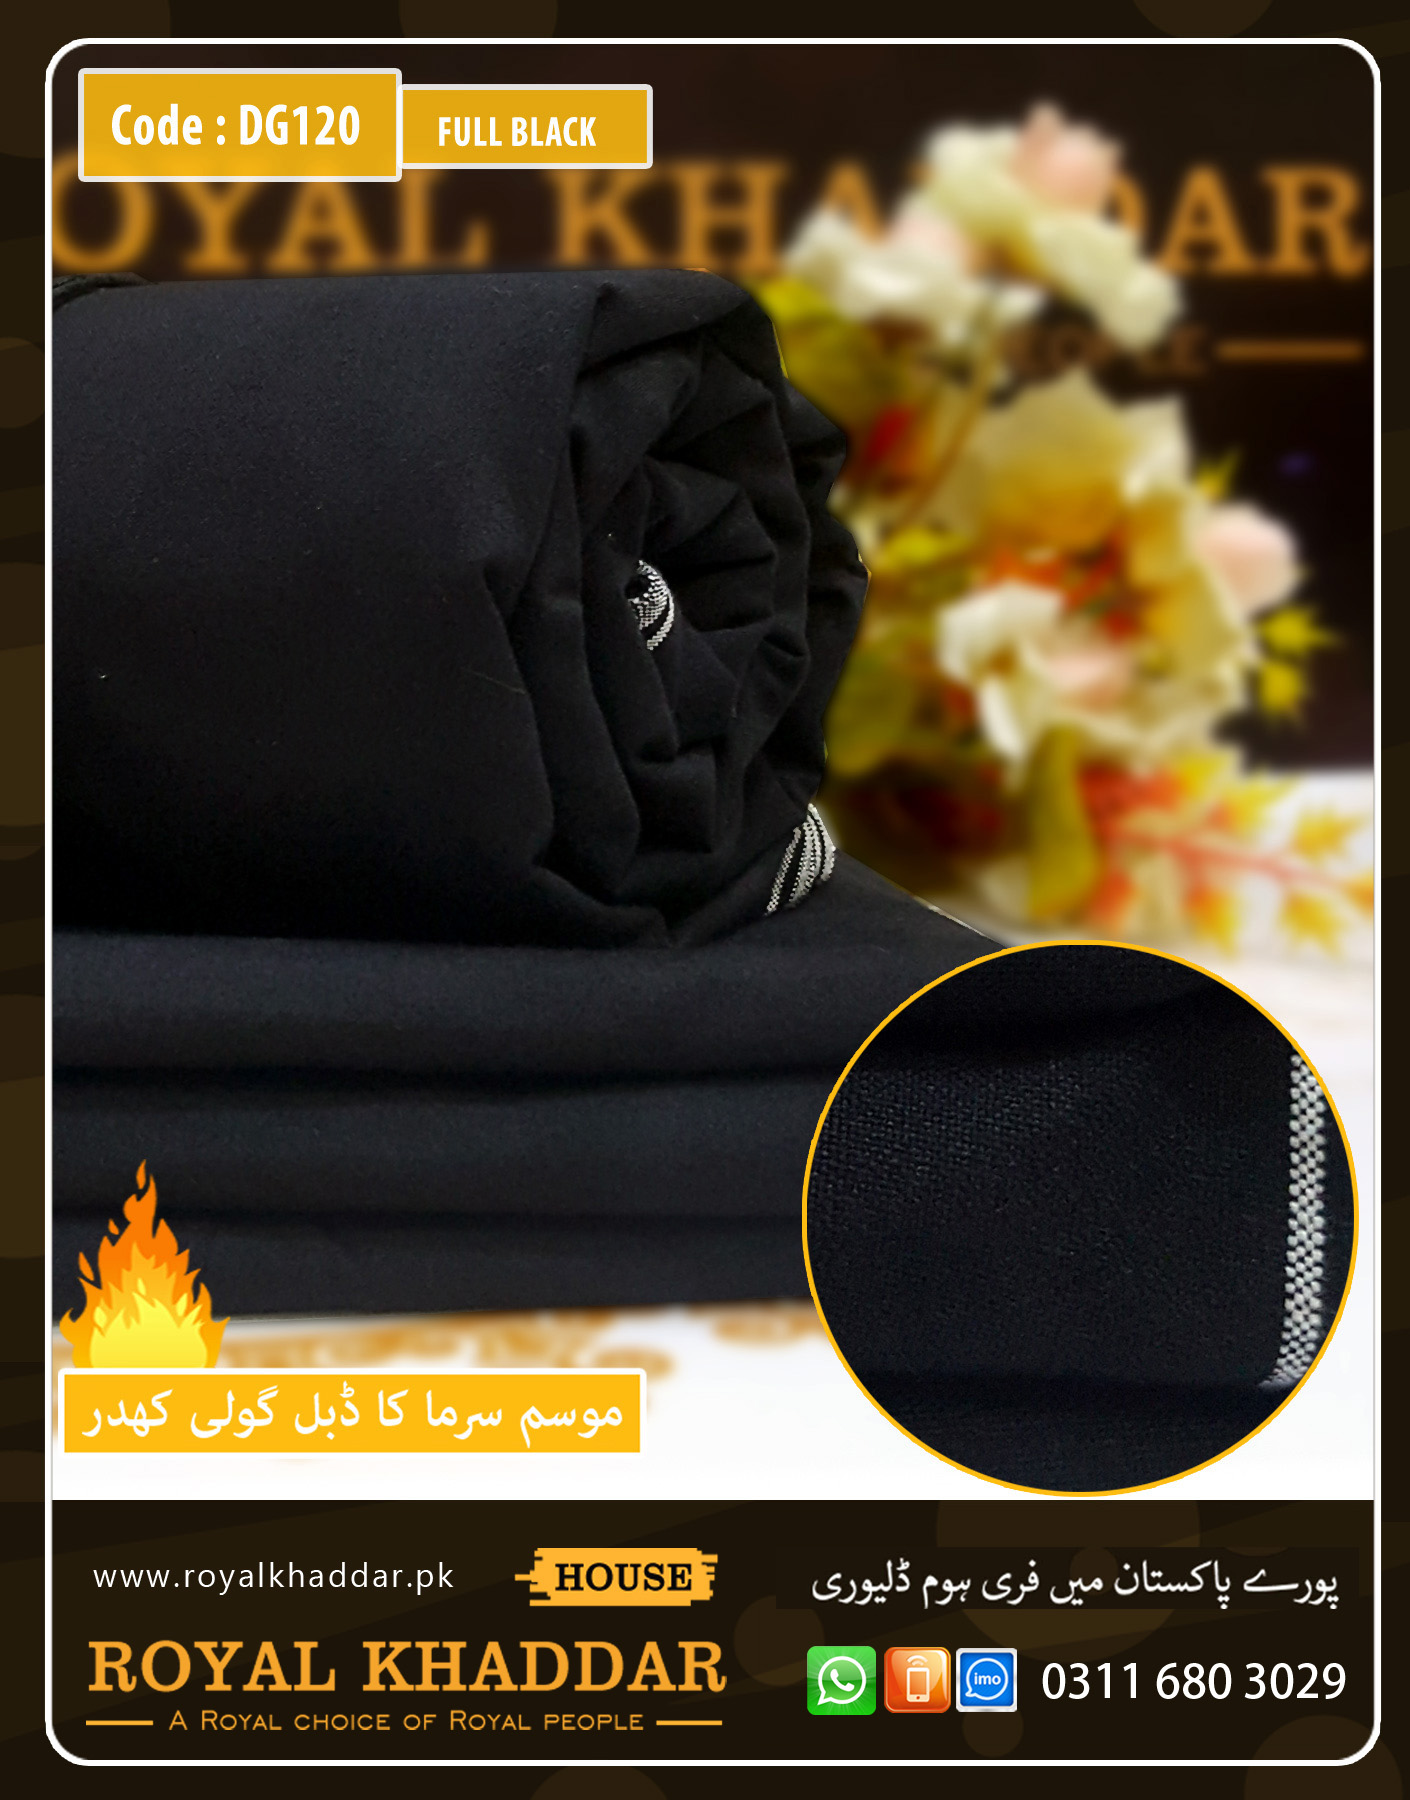 Full Black Double Goli Winter Khaddar